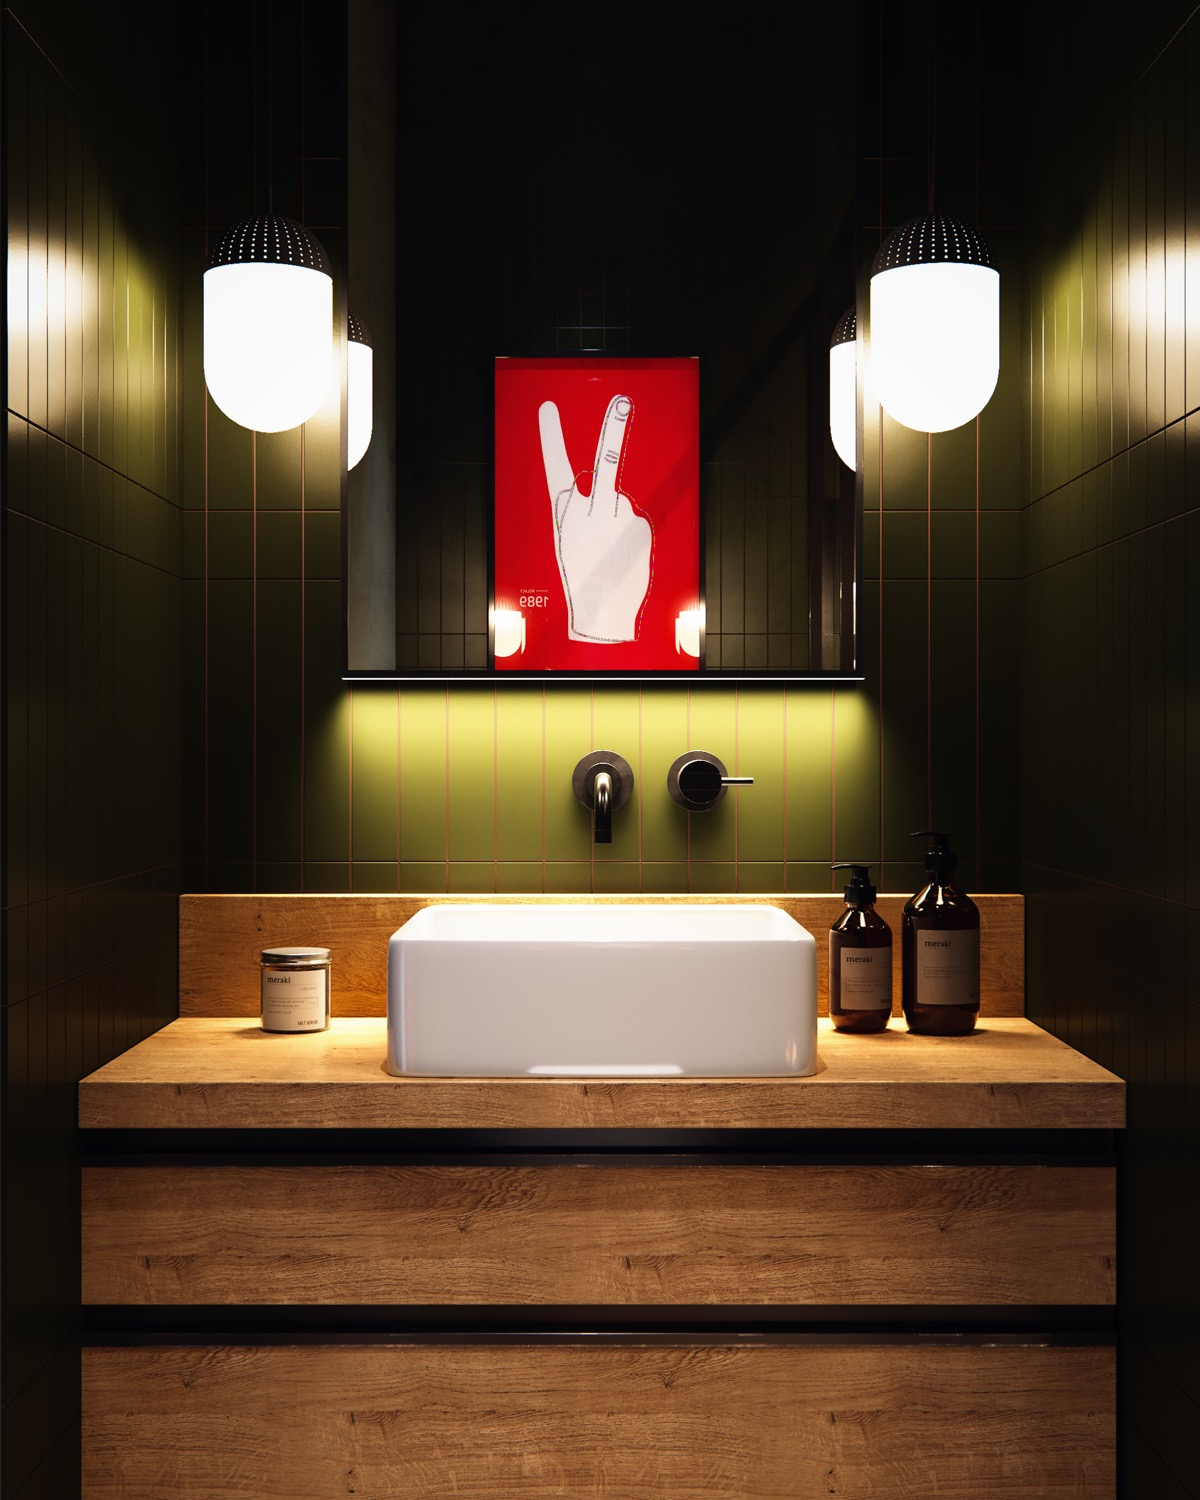 40 Modern Bathroom Vanities That Overflow With Style images 16